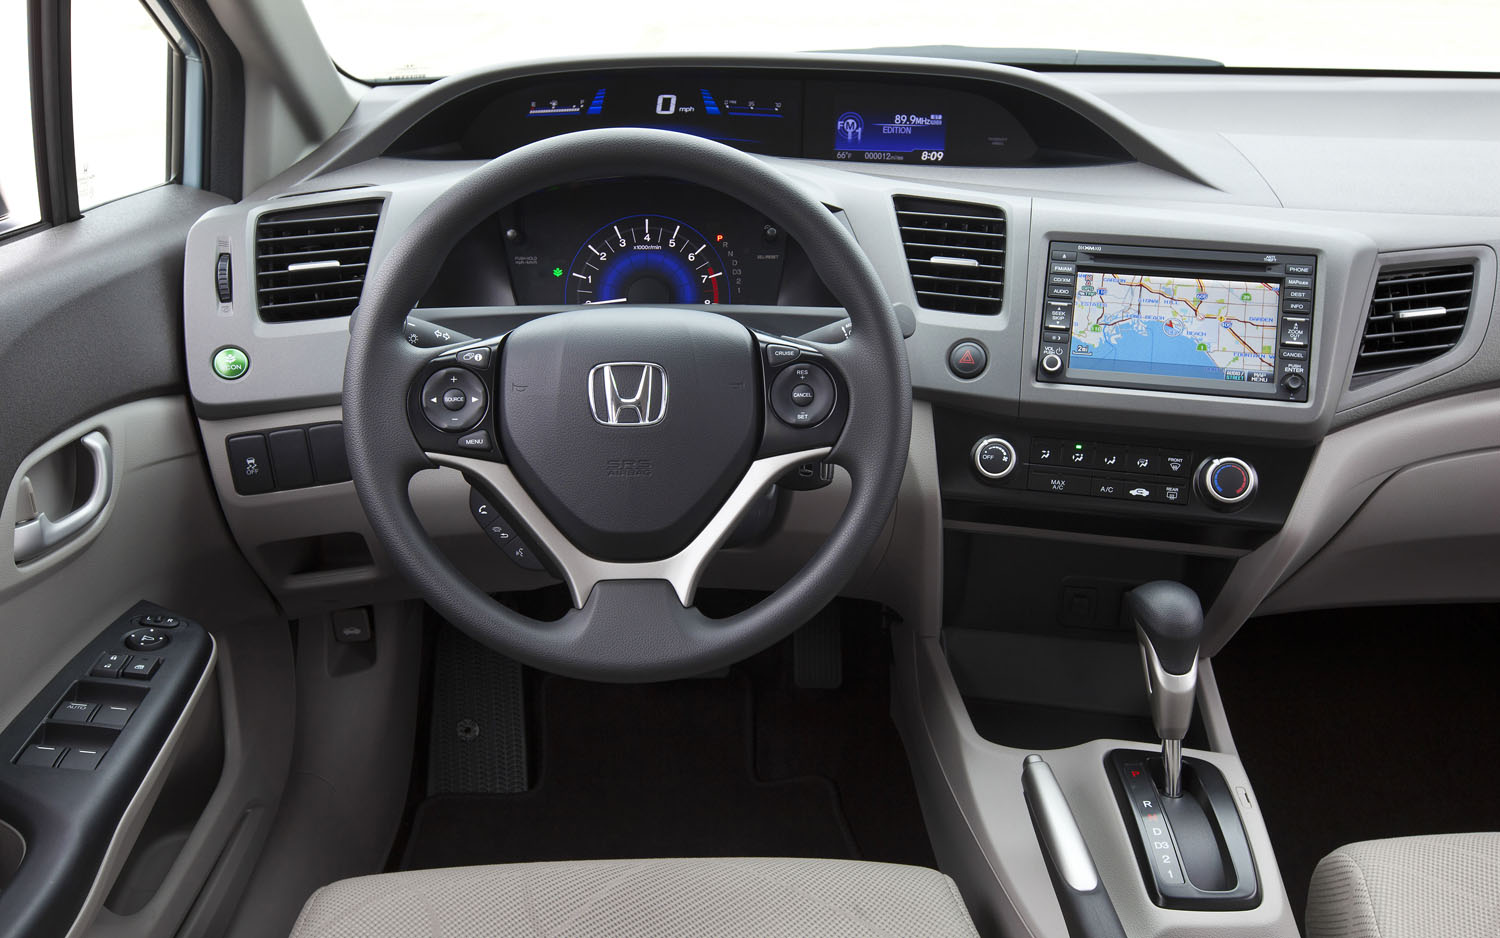 2012 honda civic natural gas goes on sale for 26 905 for 2012 honda civic interior